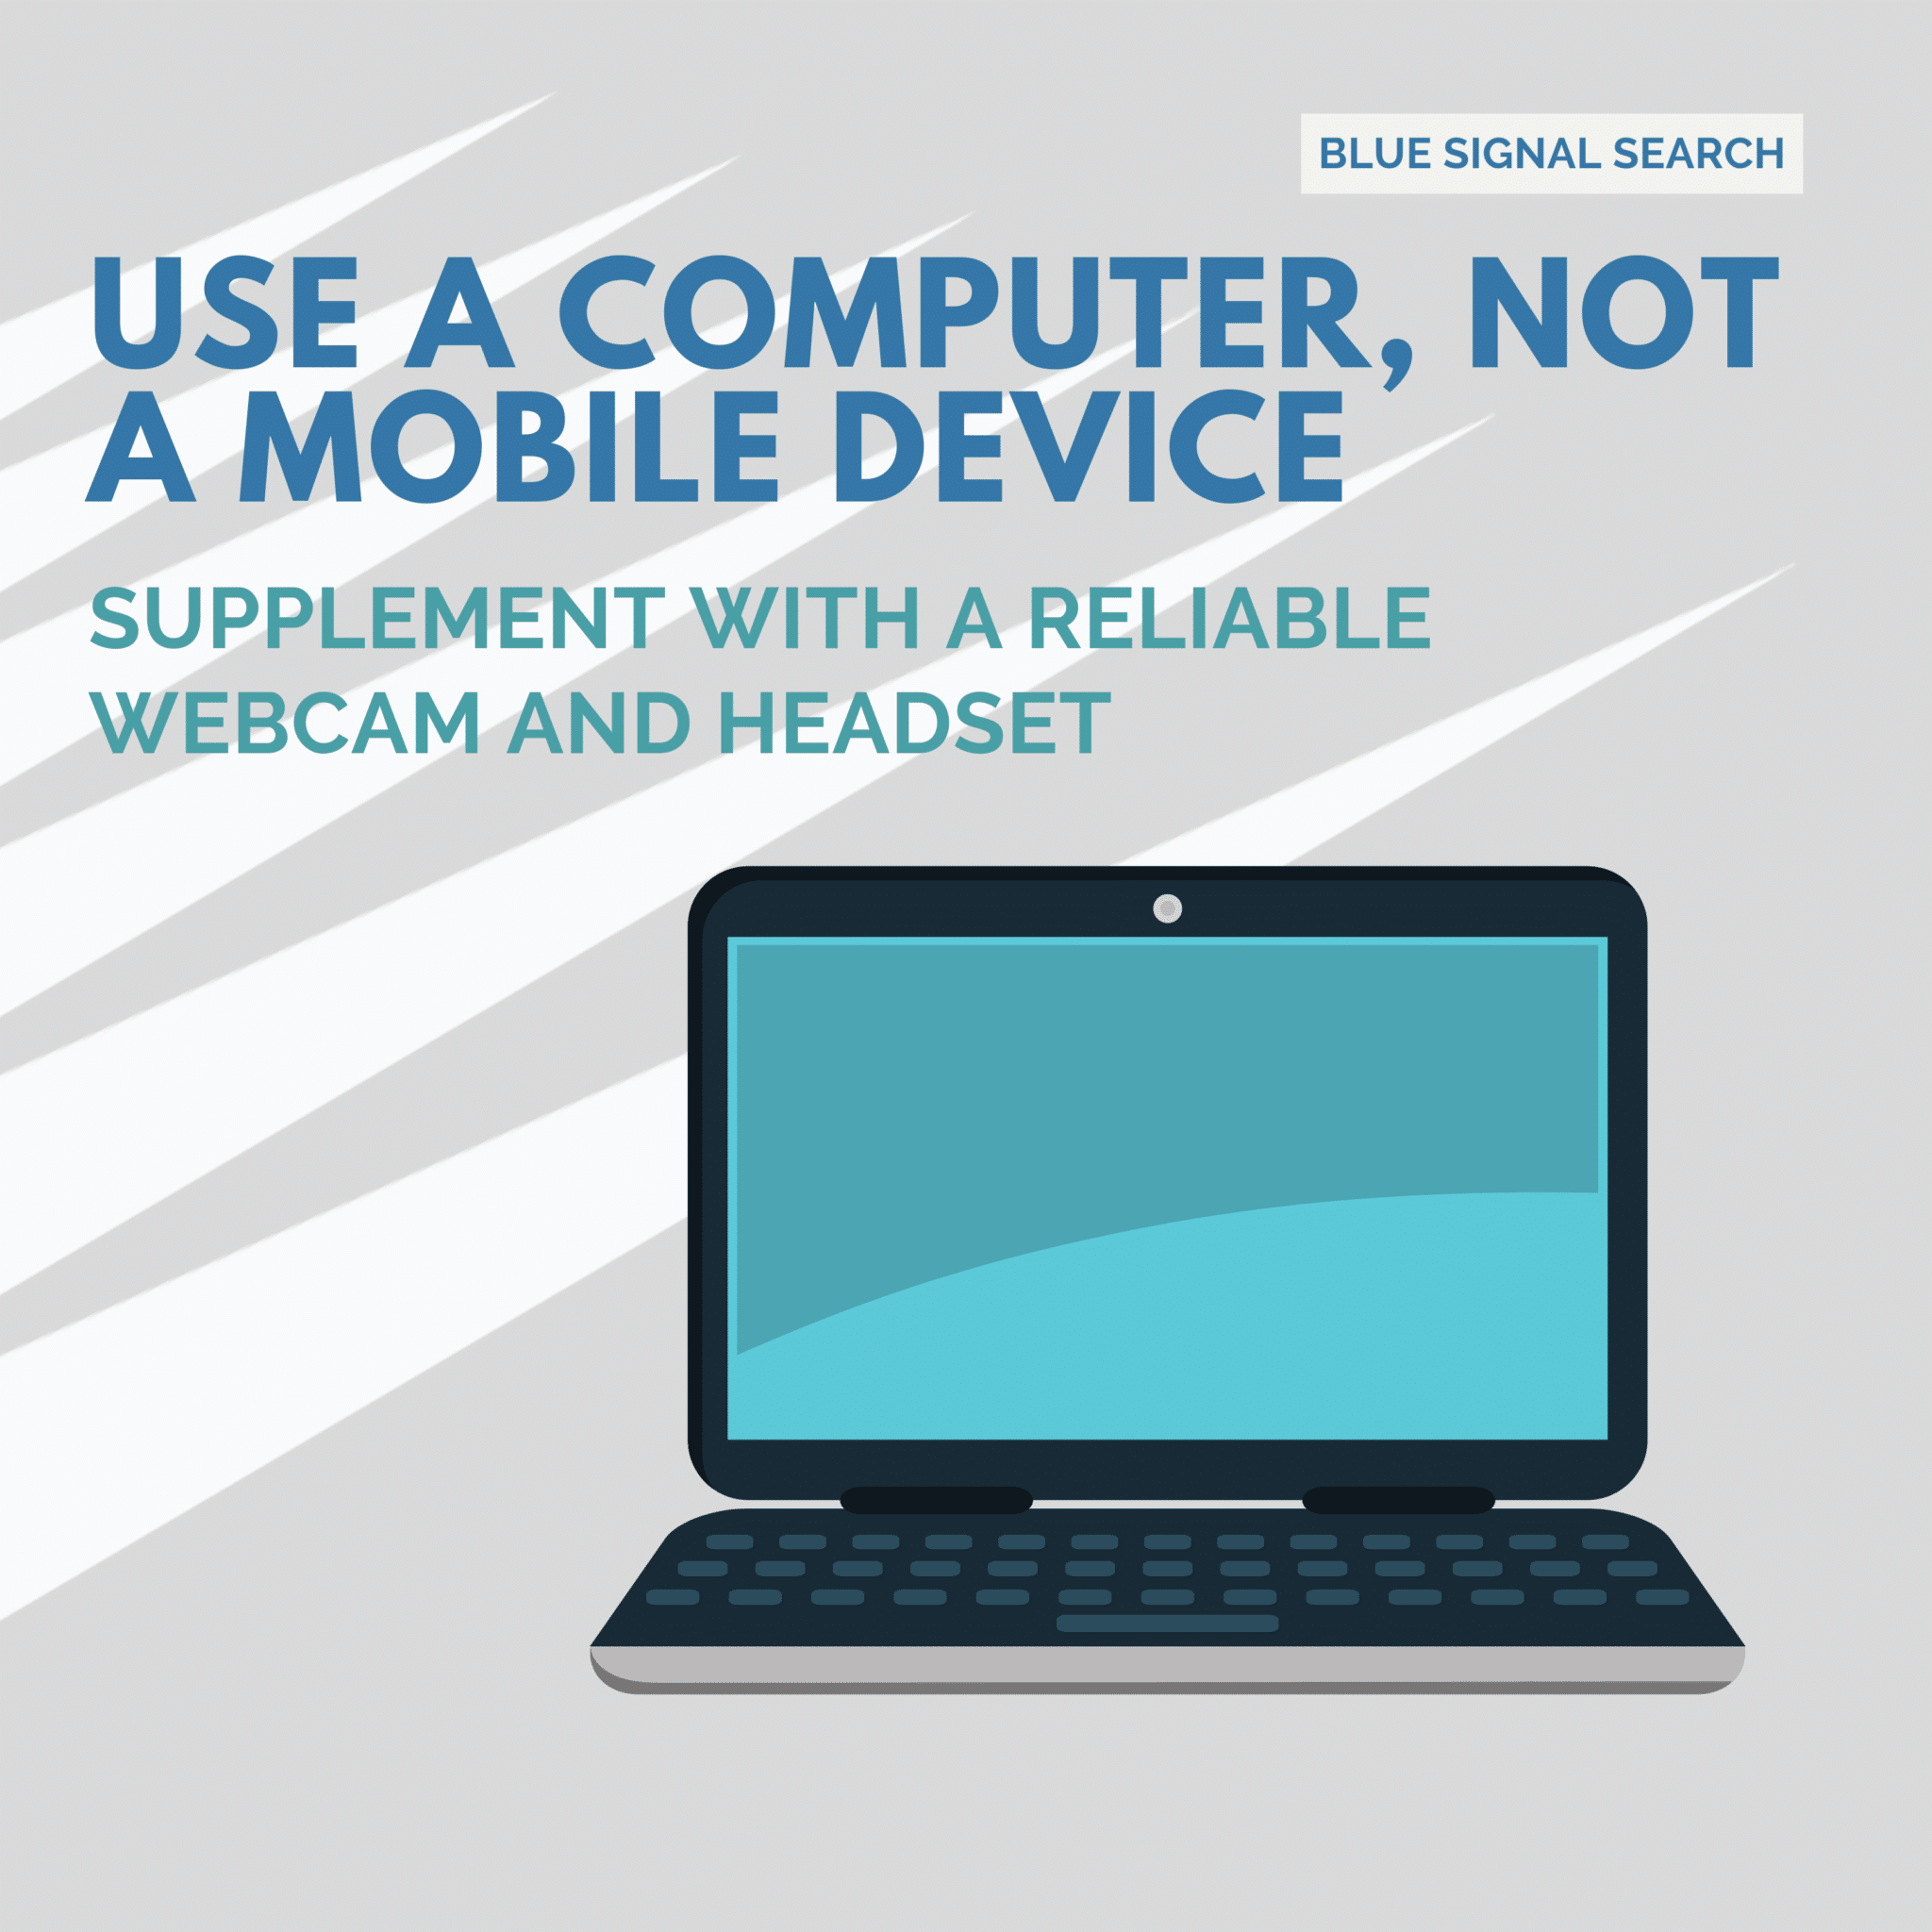 Use a Computer, Not a Mobile Device